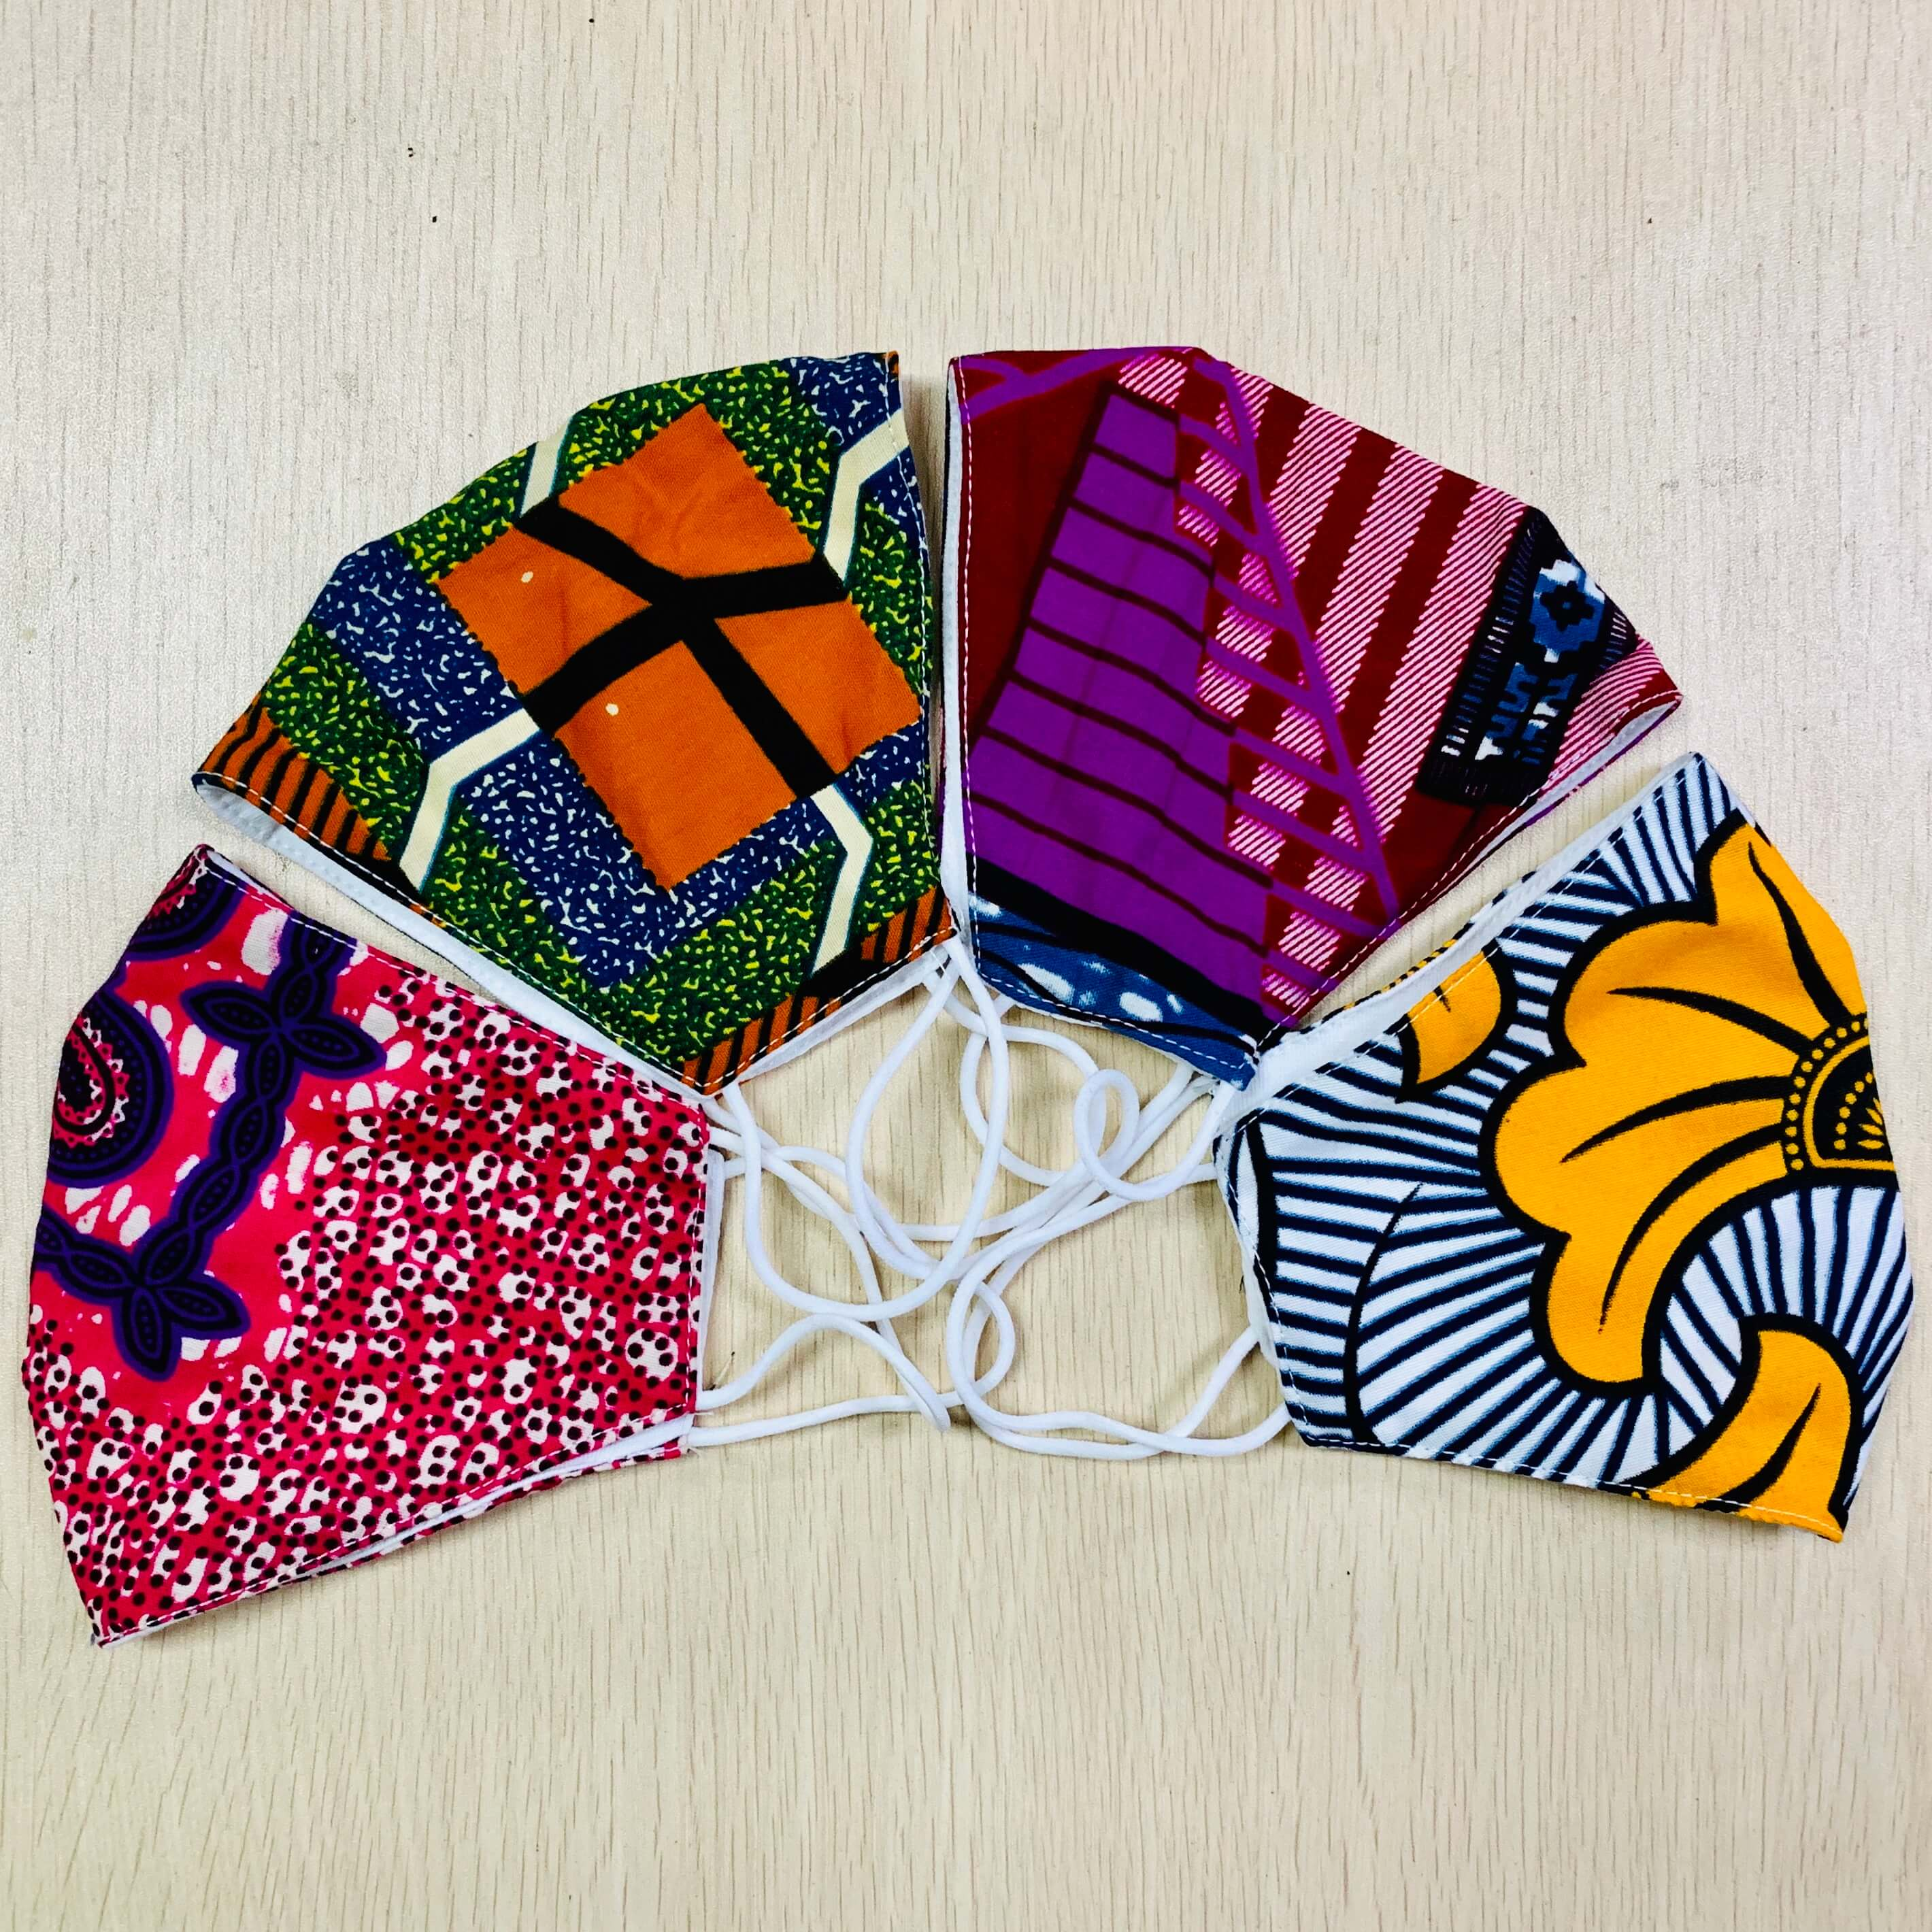 Cotton Dust Mask Ankara Print Masks Face Masks Anti-bacterial Dust Cotton Cubre Bocas Masks